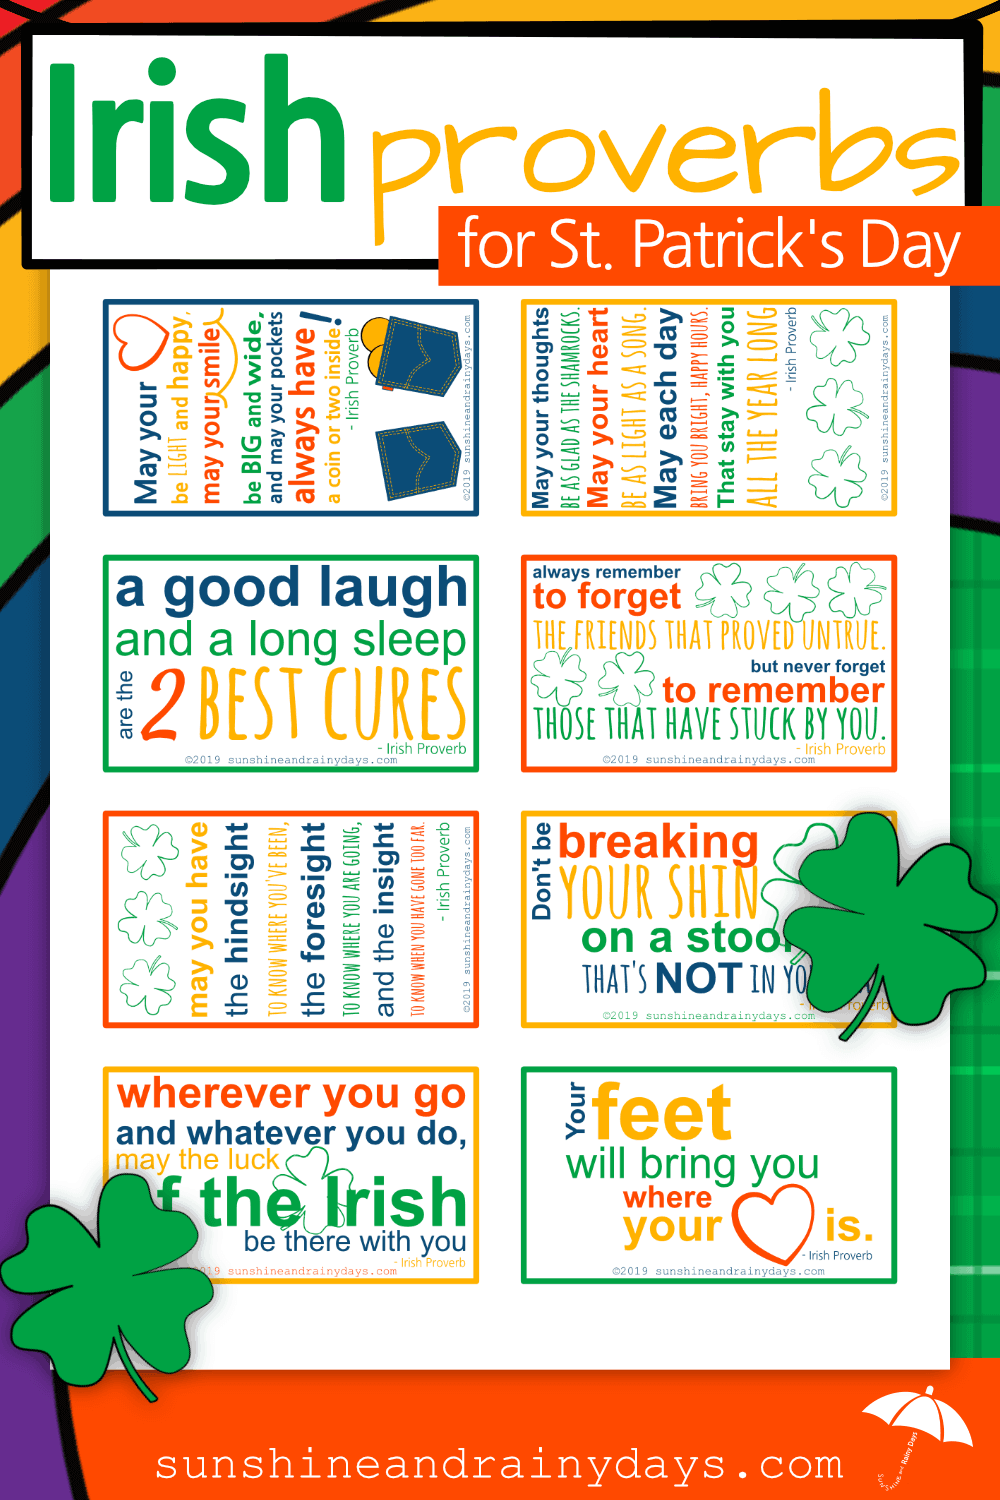 St. Patrick's Day is a day to celebrate all things Irish! This Irish Proverbs Printable will help you do just that! The Irish Proverbs PDF has eight, business card size, Irish Proverbs to tuck in your wallet and share with friends!